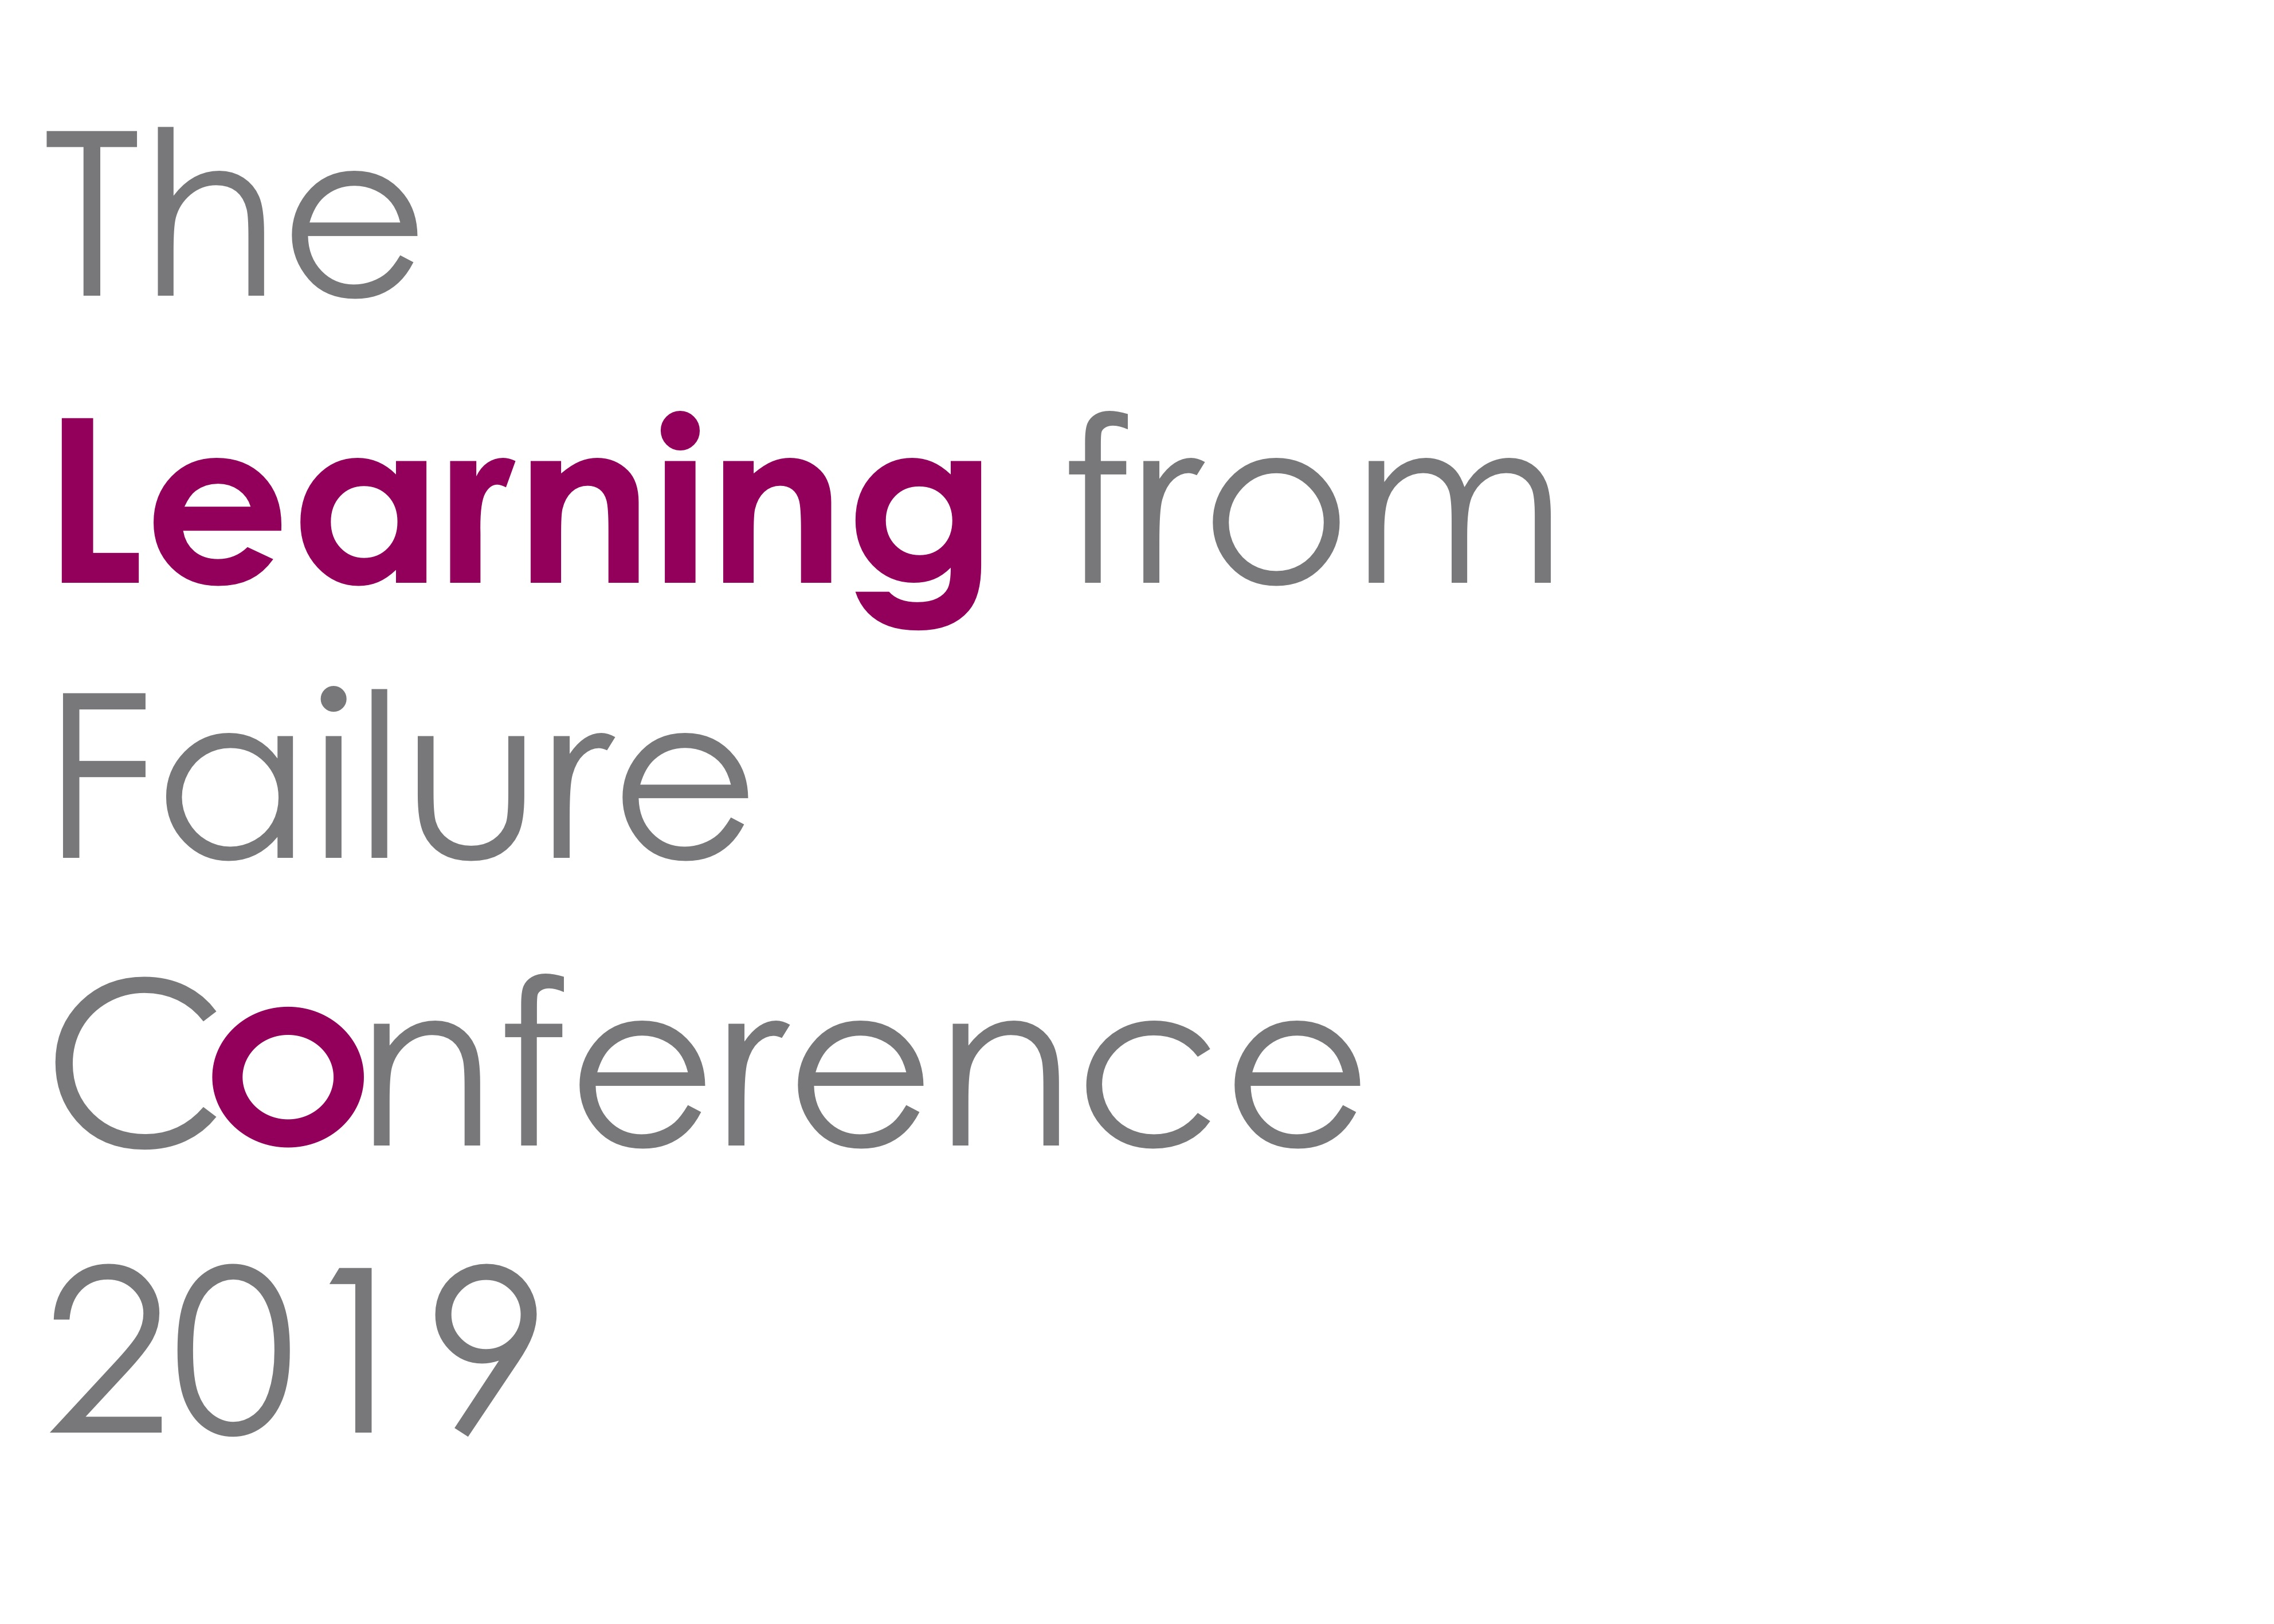 Failure Conference 2019 Logo